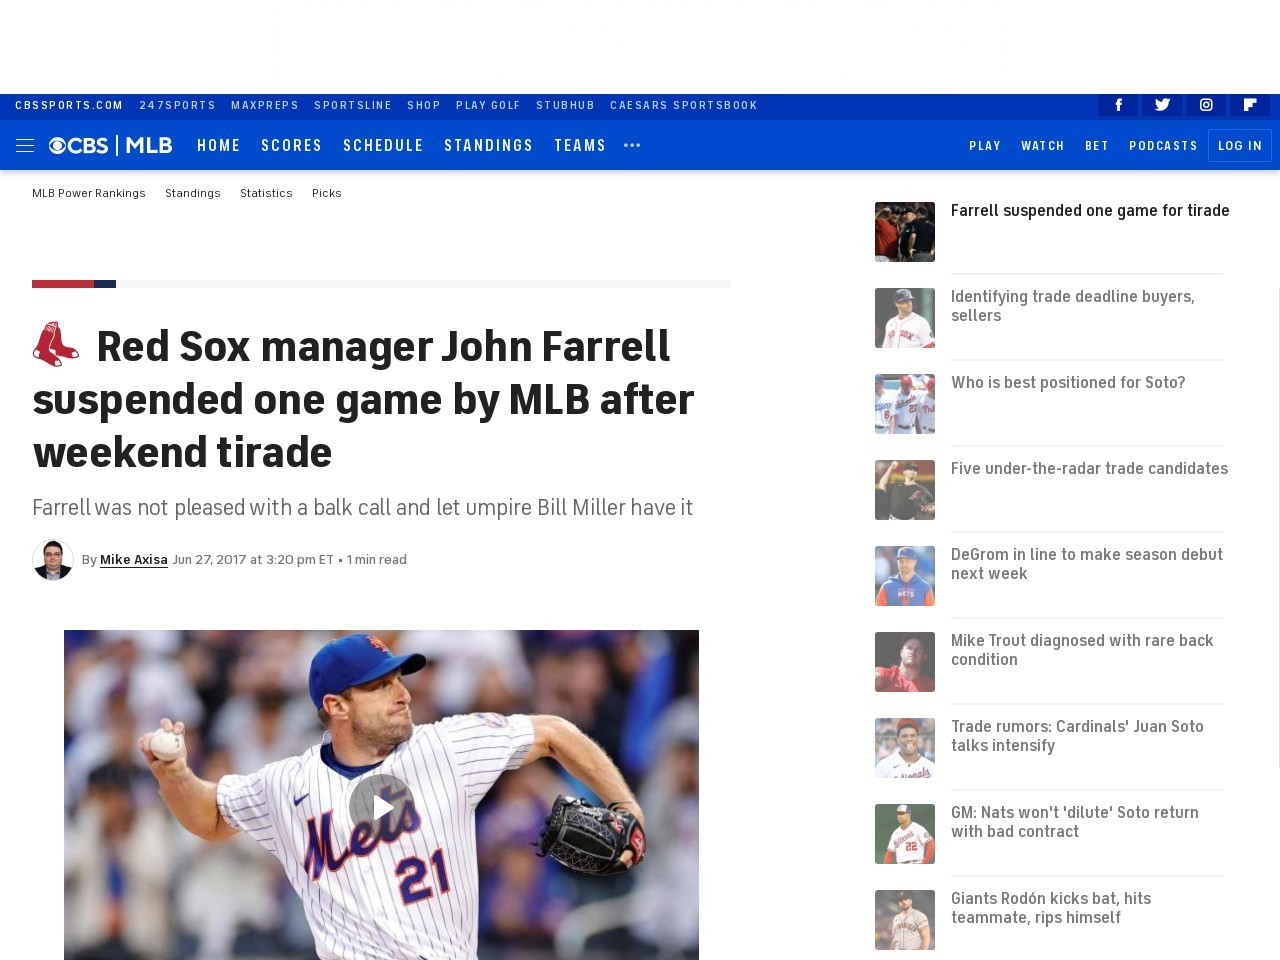 Red Sox manager John Farrell suspended one game by MLB after weekend tirade